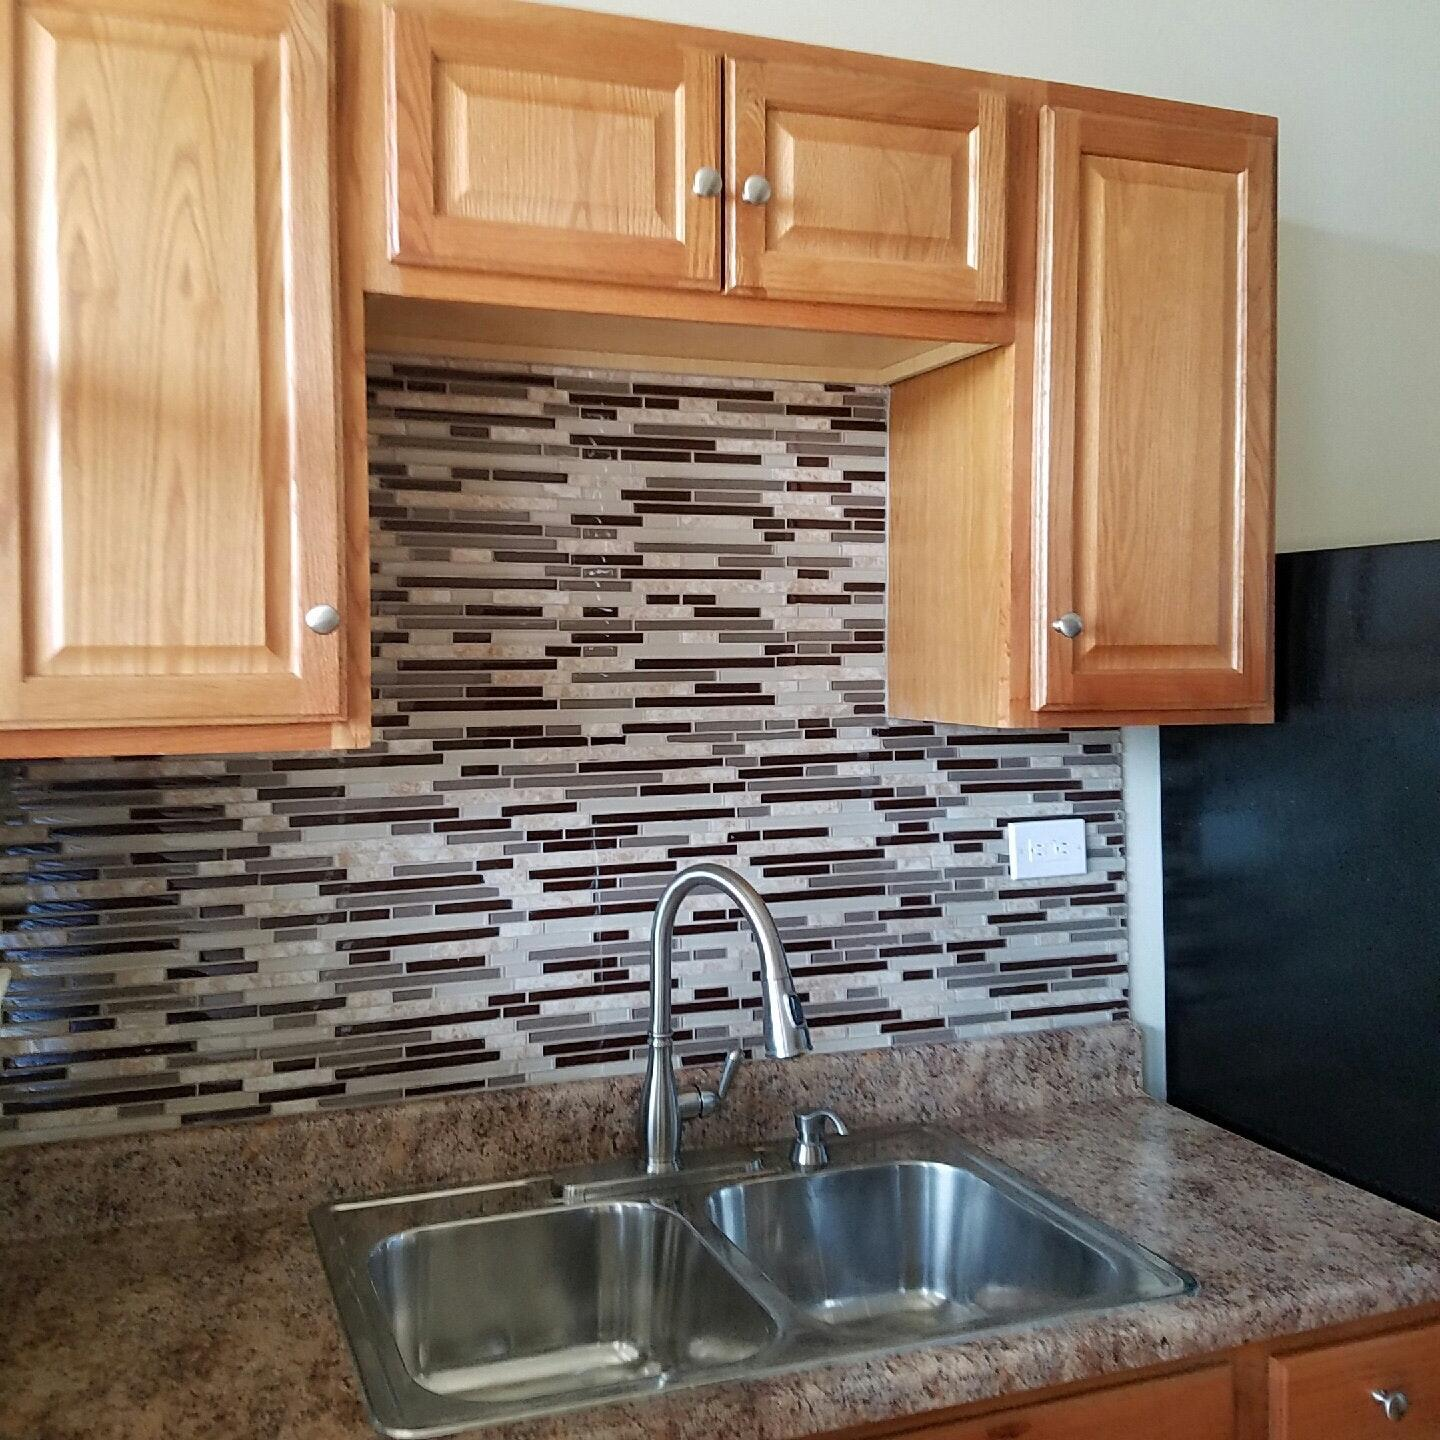 2150 N Kildare Ave For Rent Chicago IL